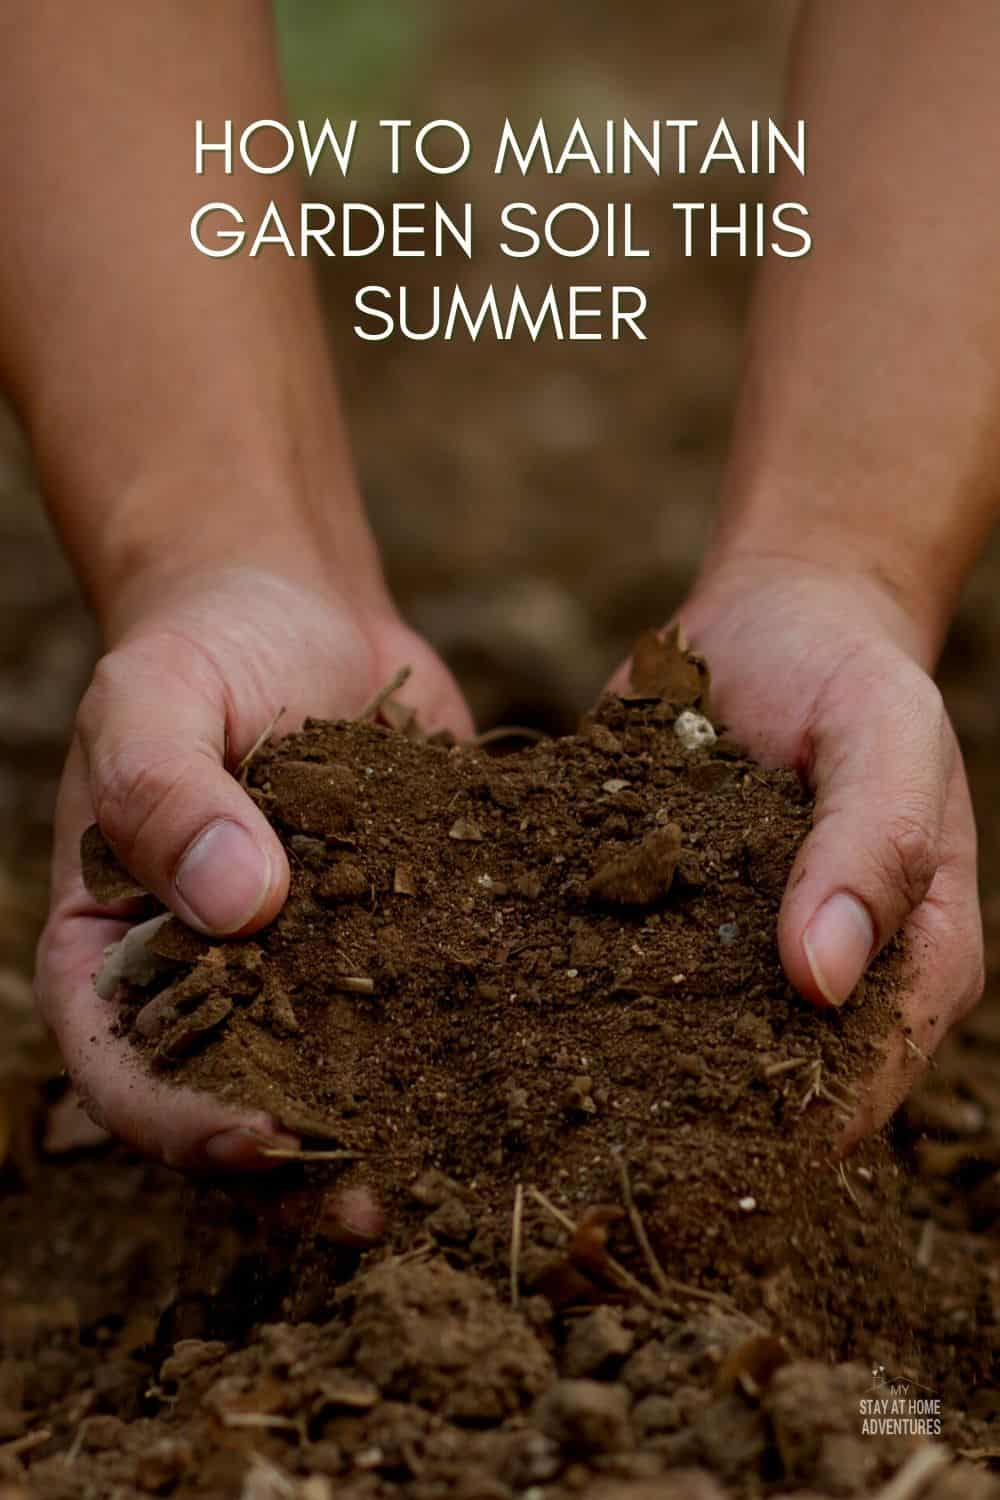 Summer is the perfect time of year for gardening. But, if you want to maintain your garden soil this summer, there are a few things that you need to know. Here's how to keep it healthy and fertile all season long! via @mystayathome